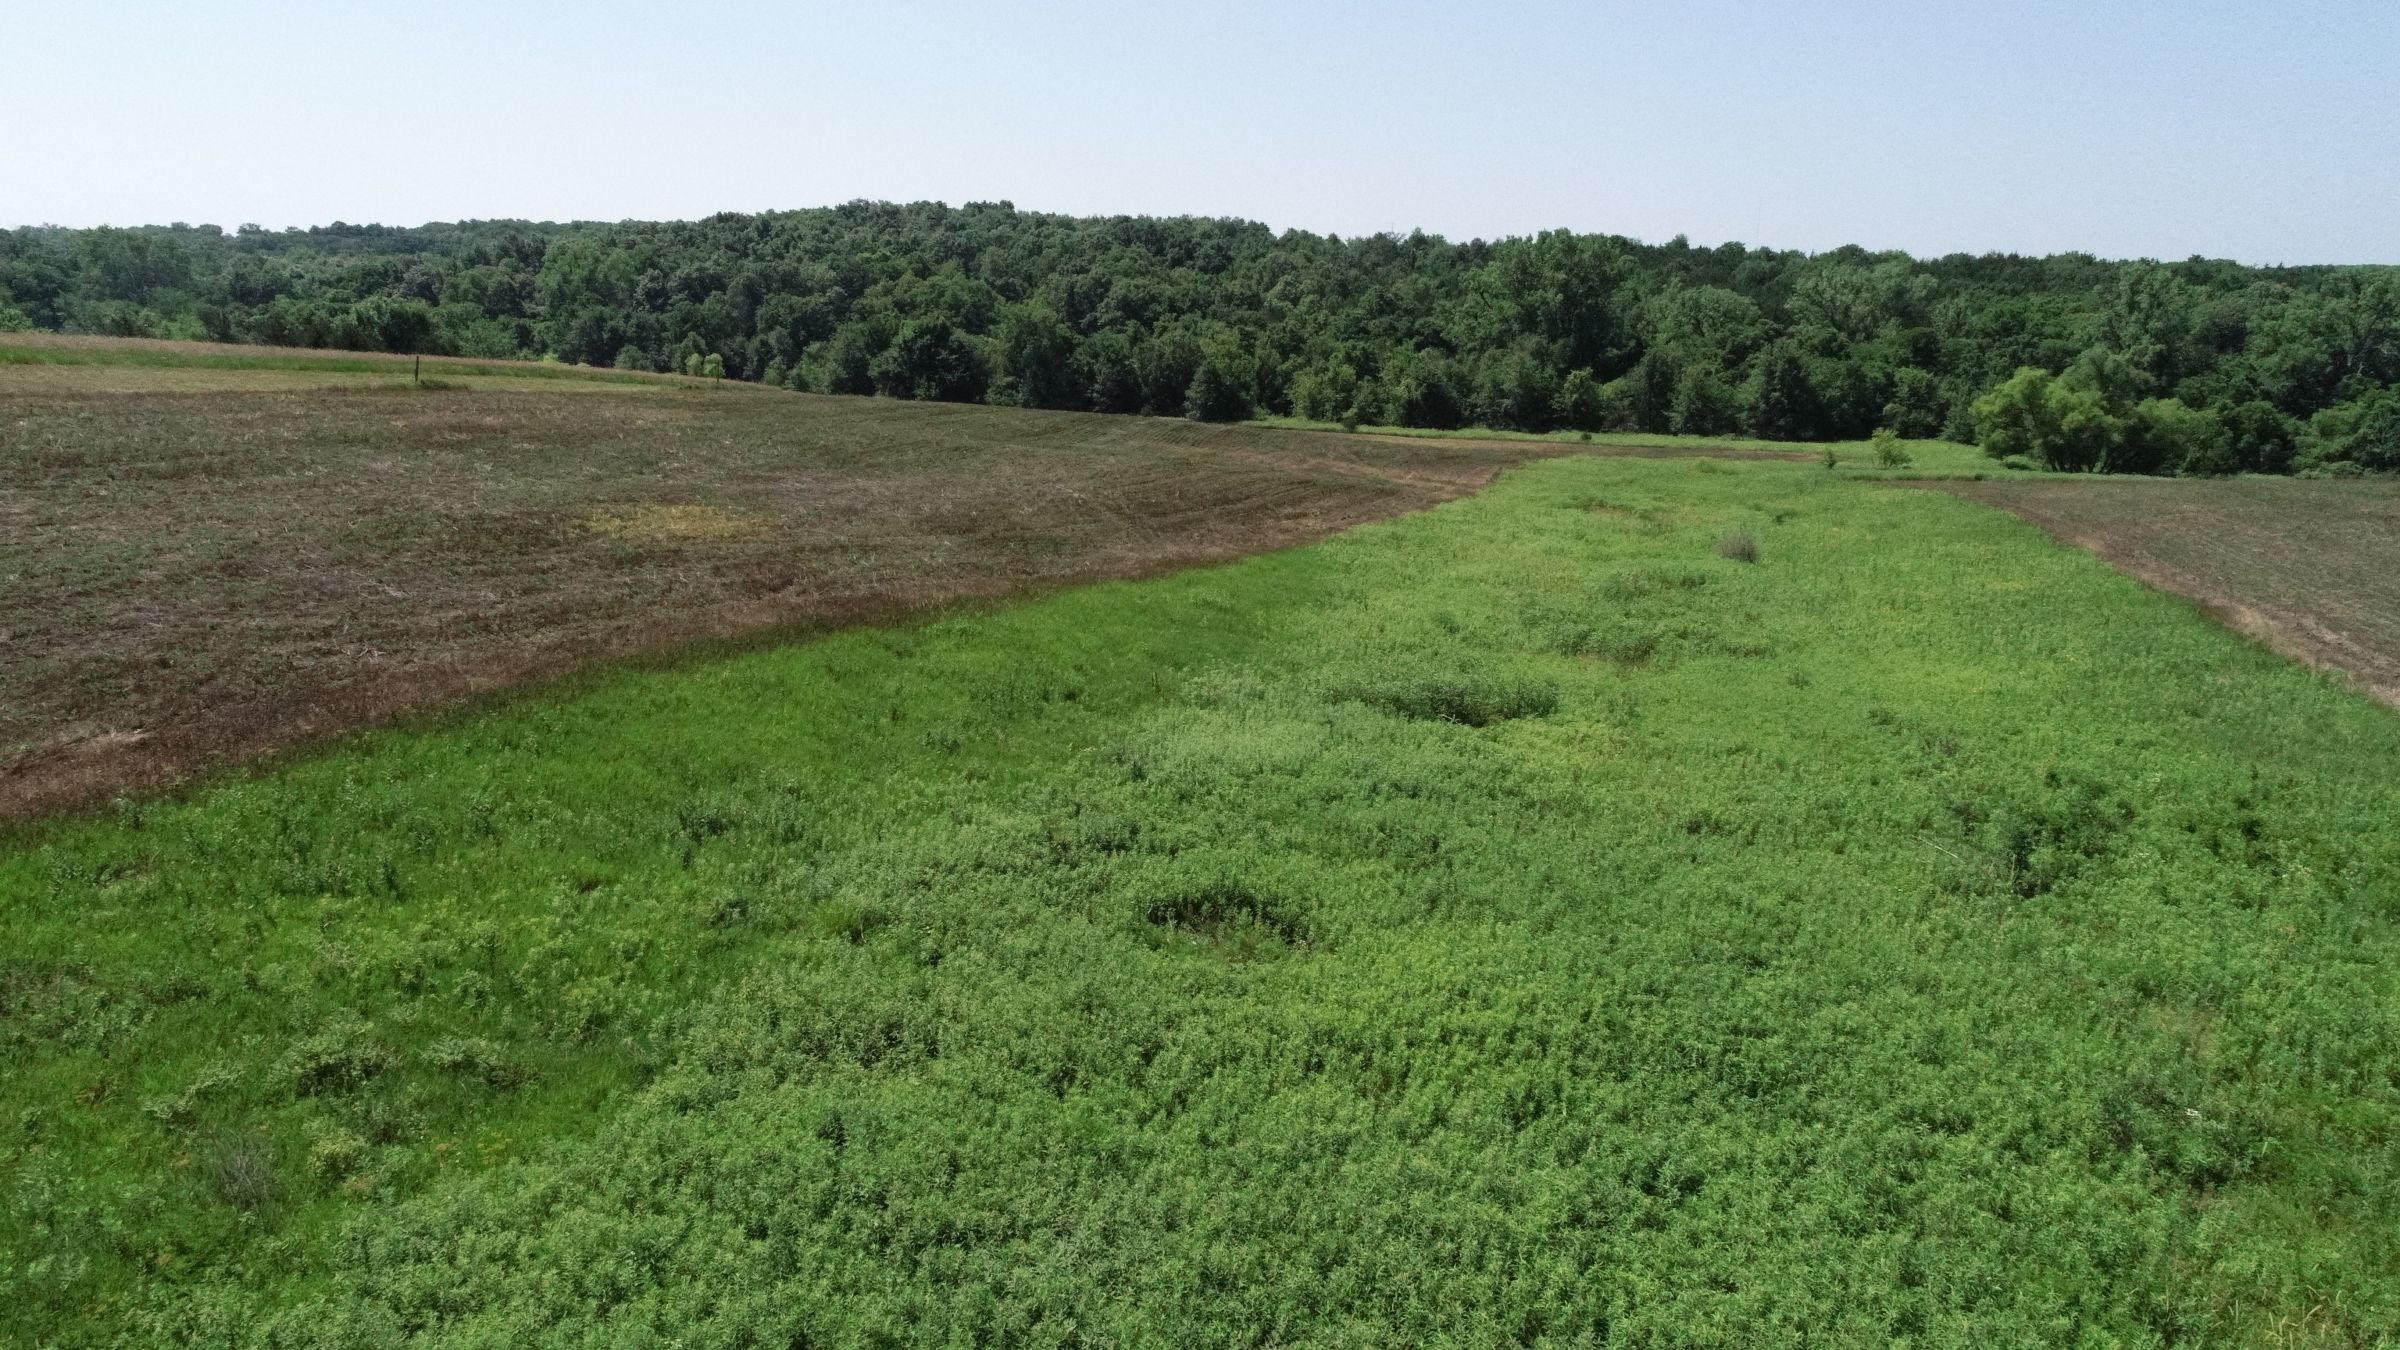 land-decatur-county-iowa-40-acres-listing-number-15069-3-2020-07-13-190428.JPG